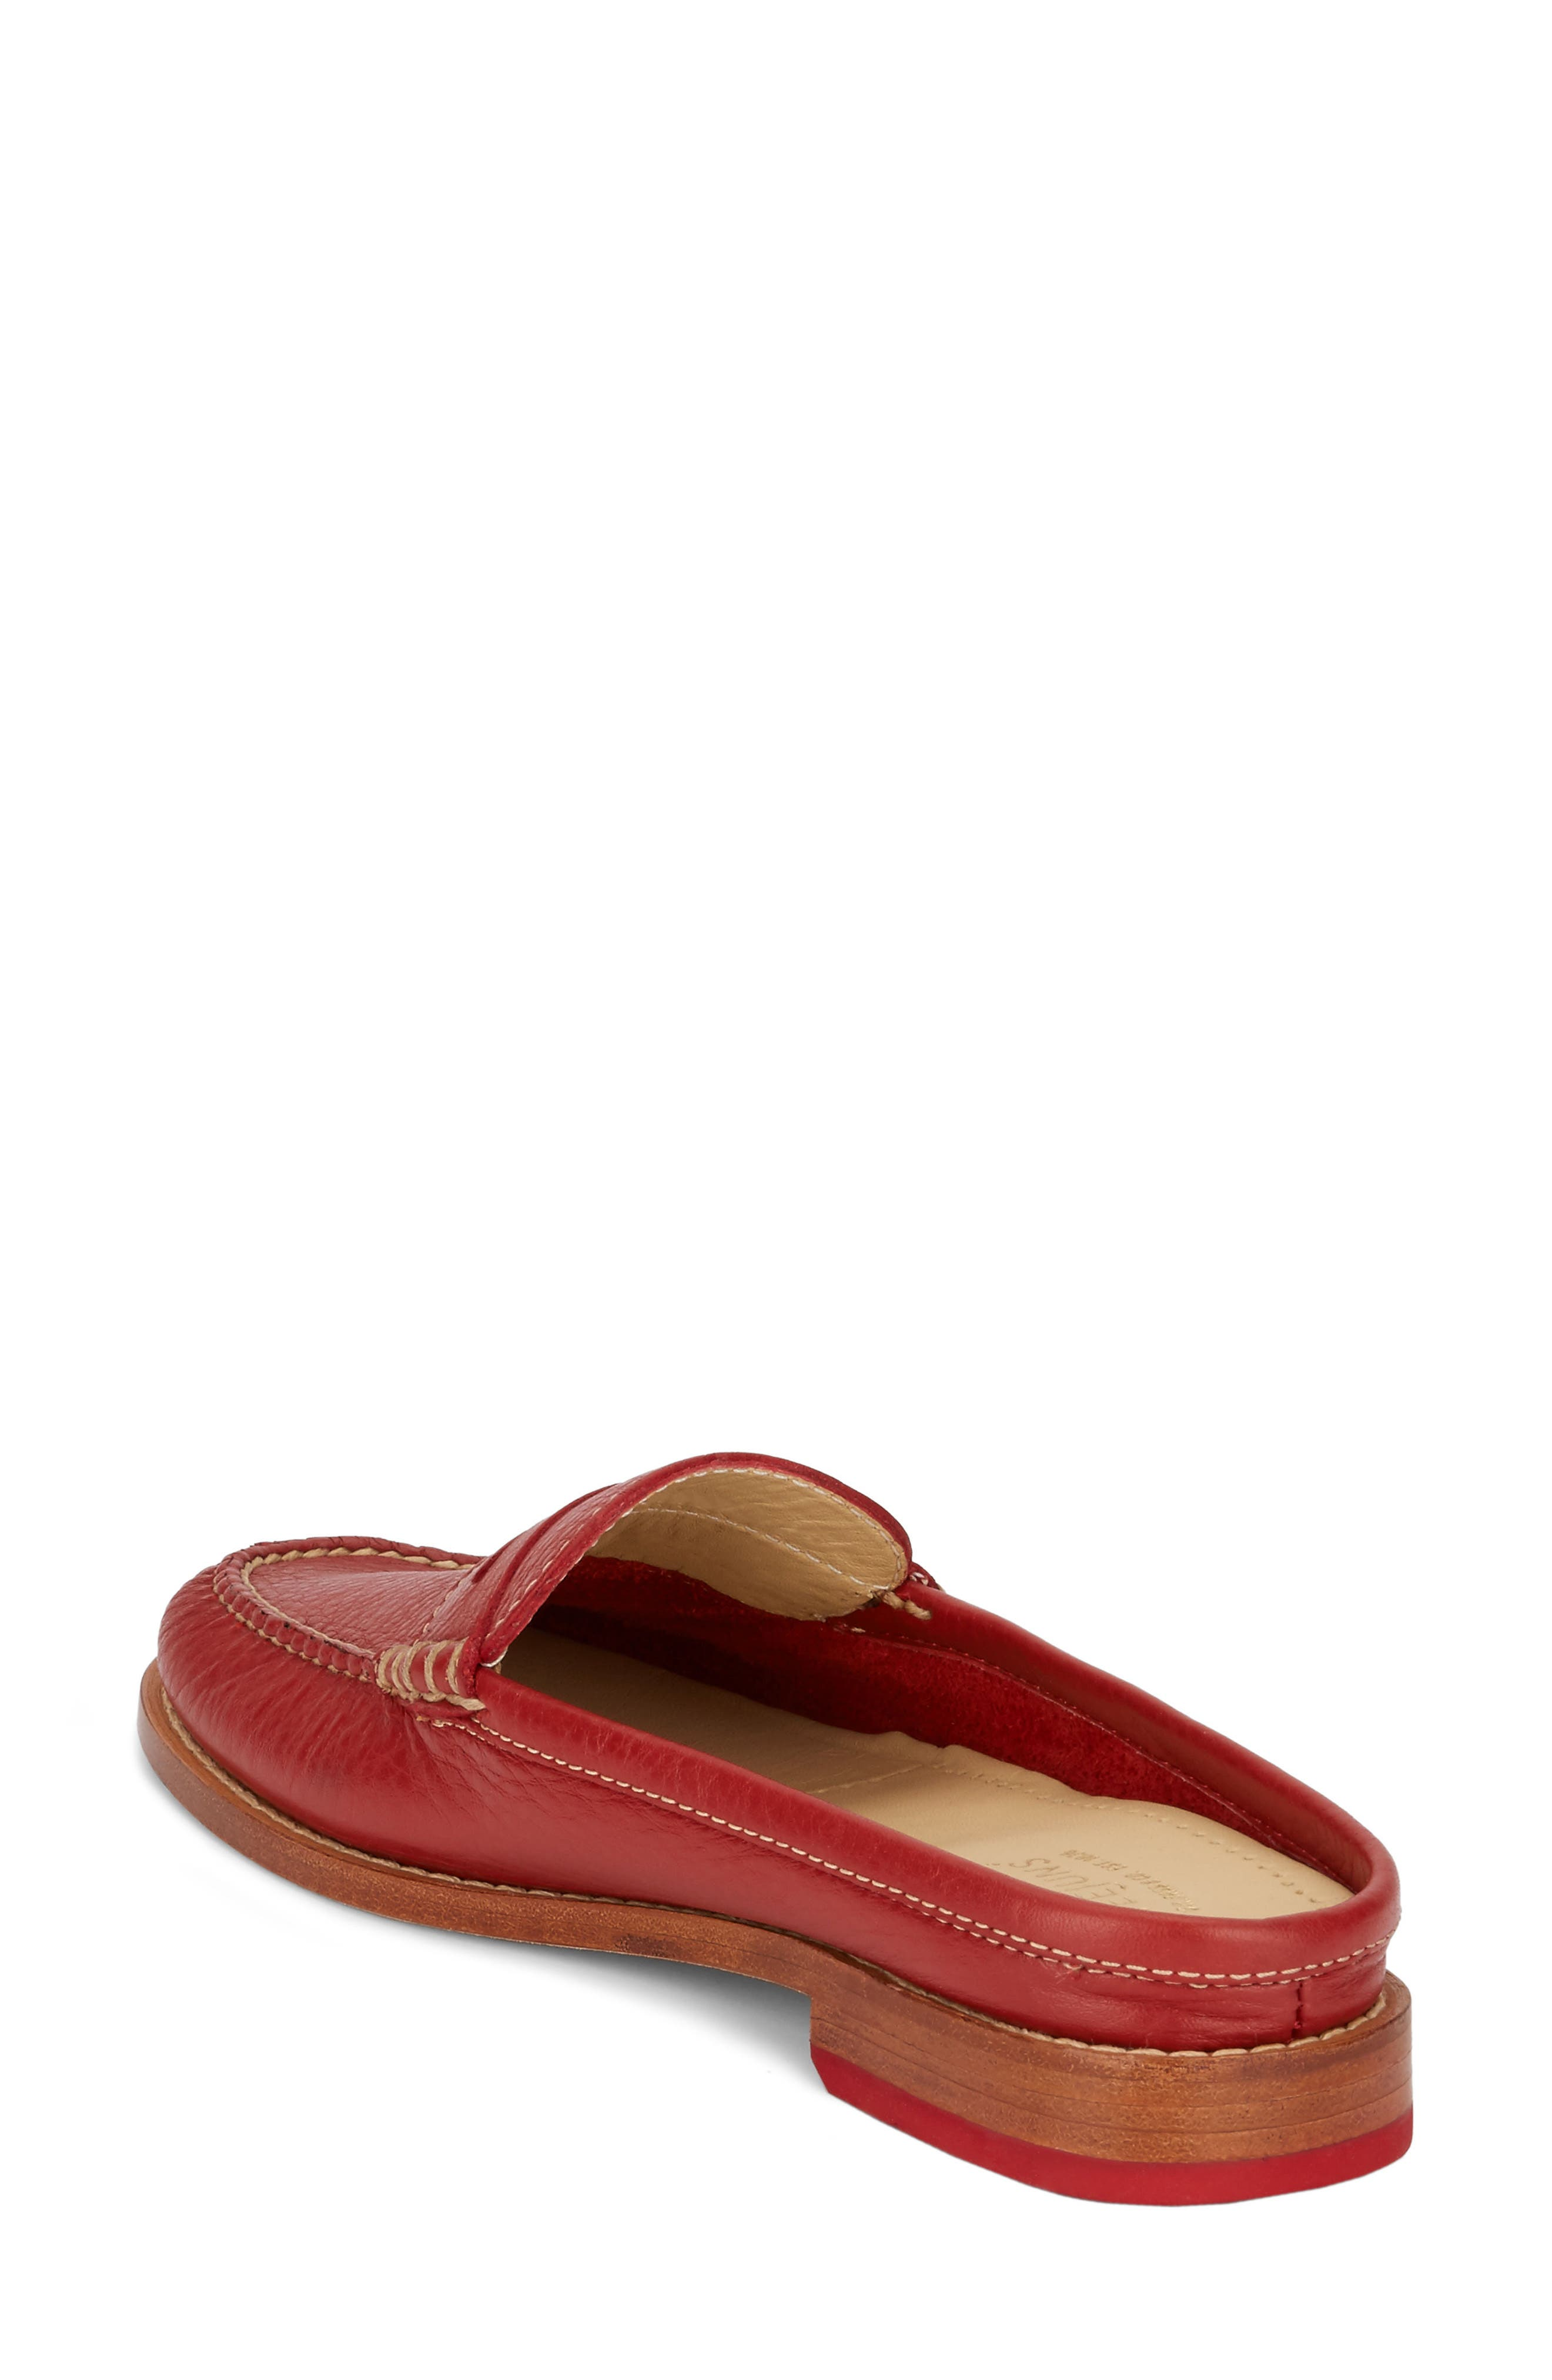 Wynn Loafer Mule,                             Alternate thumbnail 37, color,